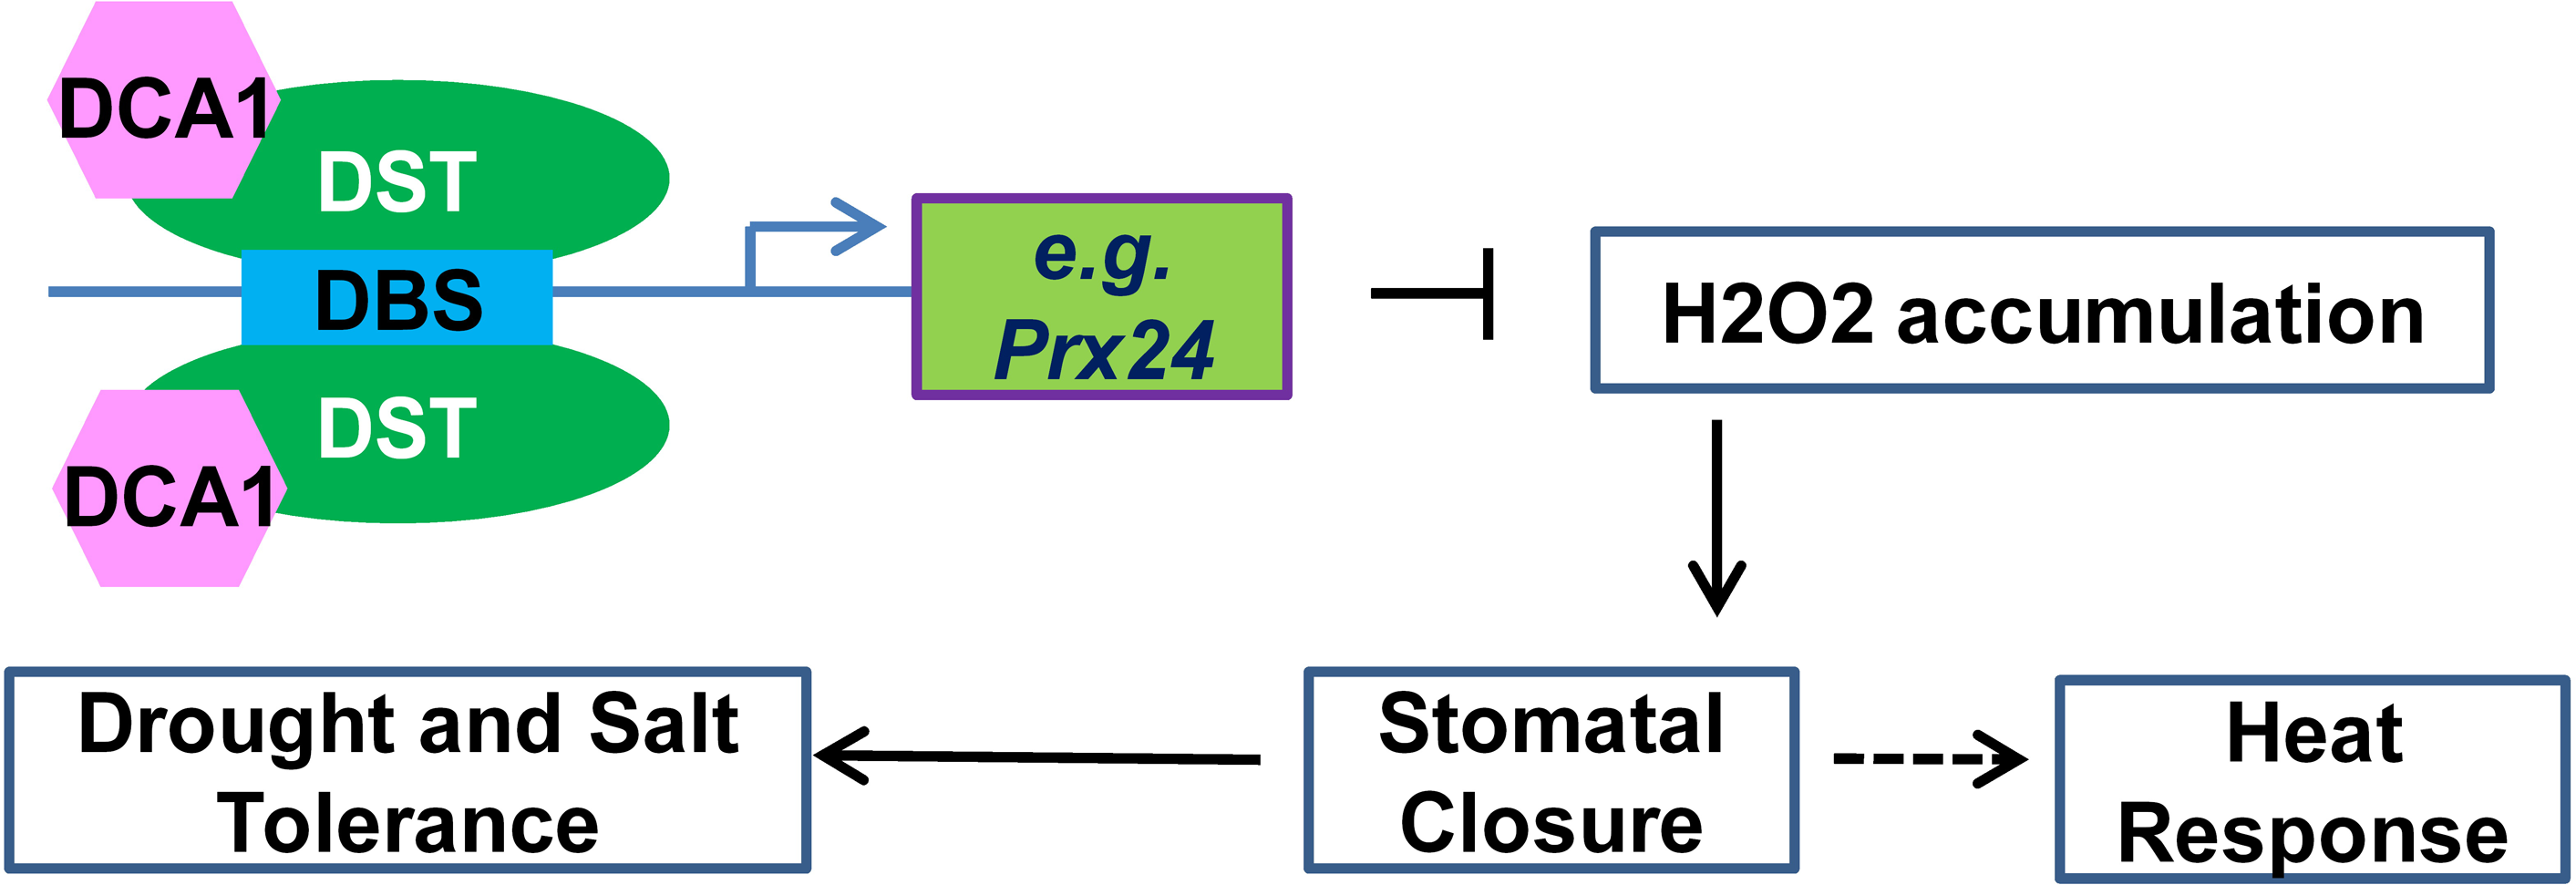 Working model for the role of the DCA1-DST transcriptional regulation complex in plants.